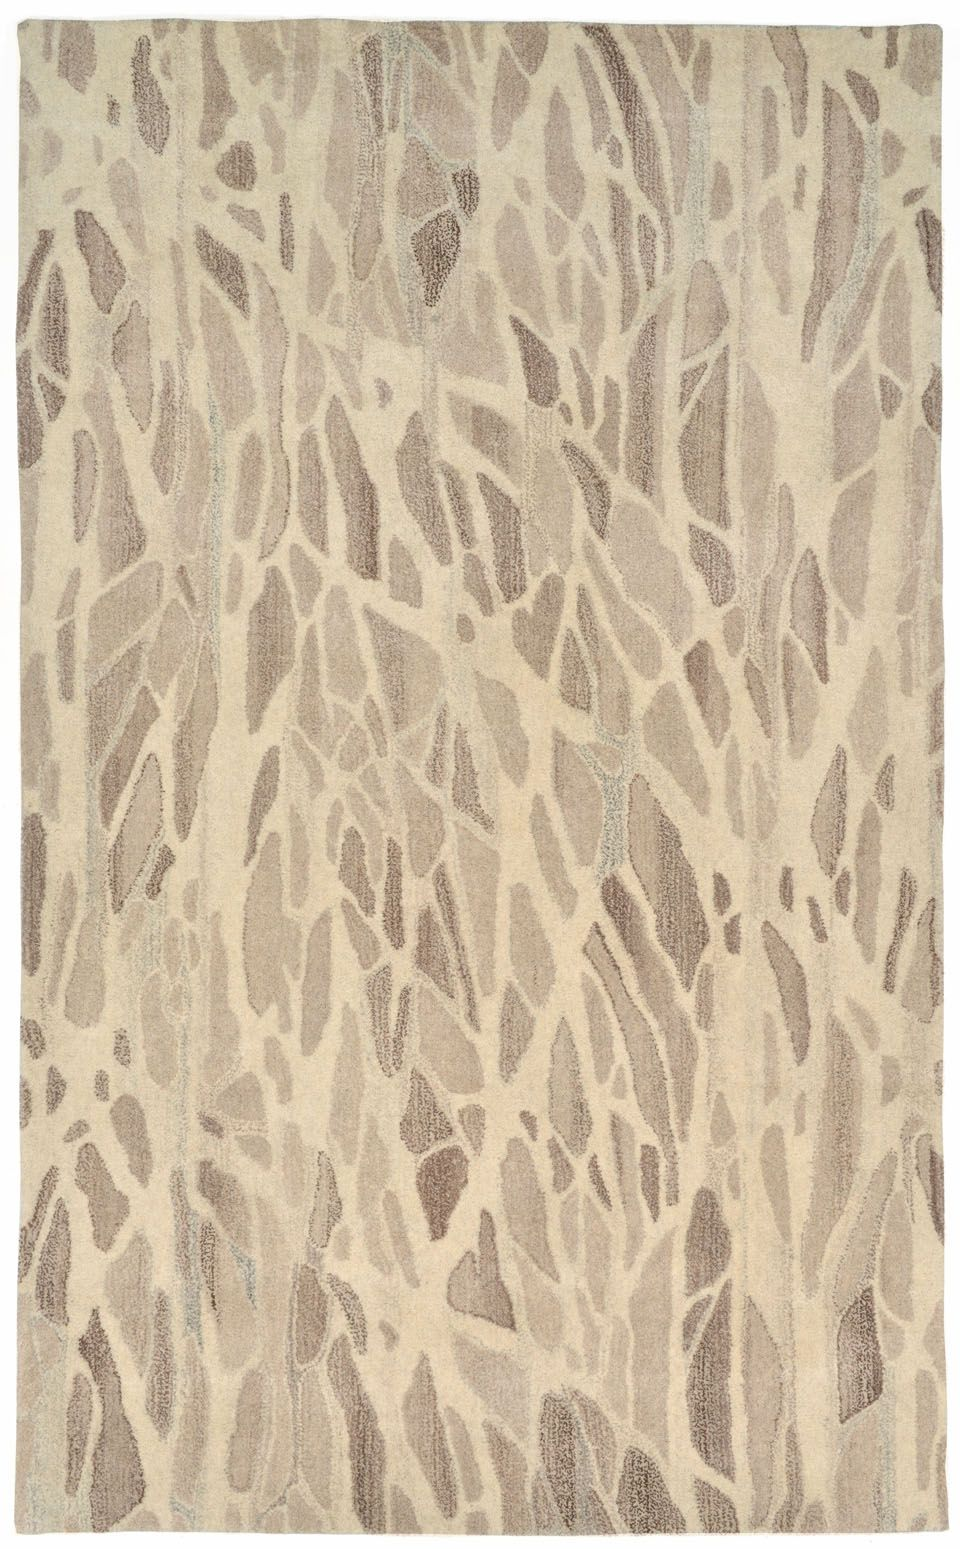 Your Source For The Finest Rugs Home Decor Fashion Accessories Colorful Rugs Rugs Liora Manne